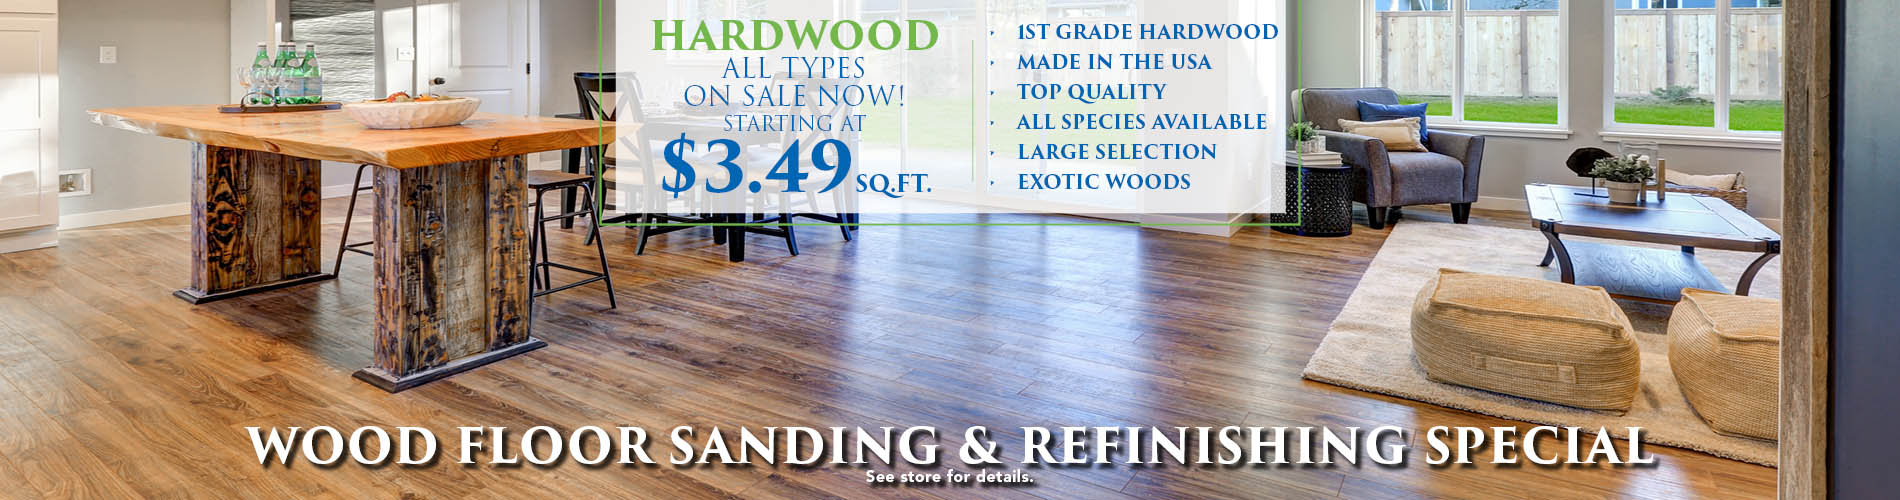 All types of hardwood on sale now starting at $3.49 sq.ft. - 1st grade, top quality, exotic, made in the USA, all species available on our huge selection!  Wood floor sanding & refinishing special available!  See store for details!